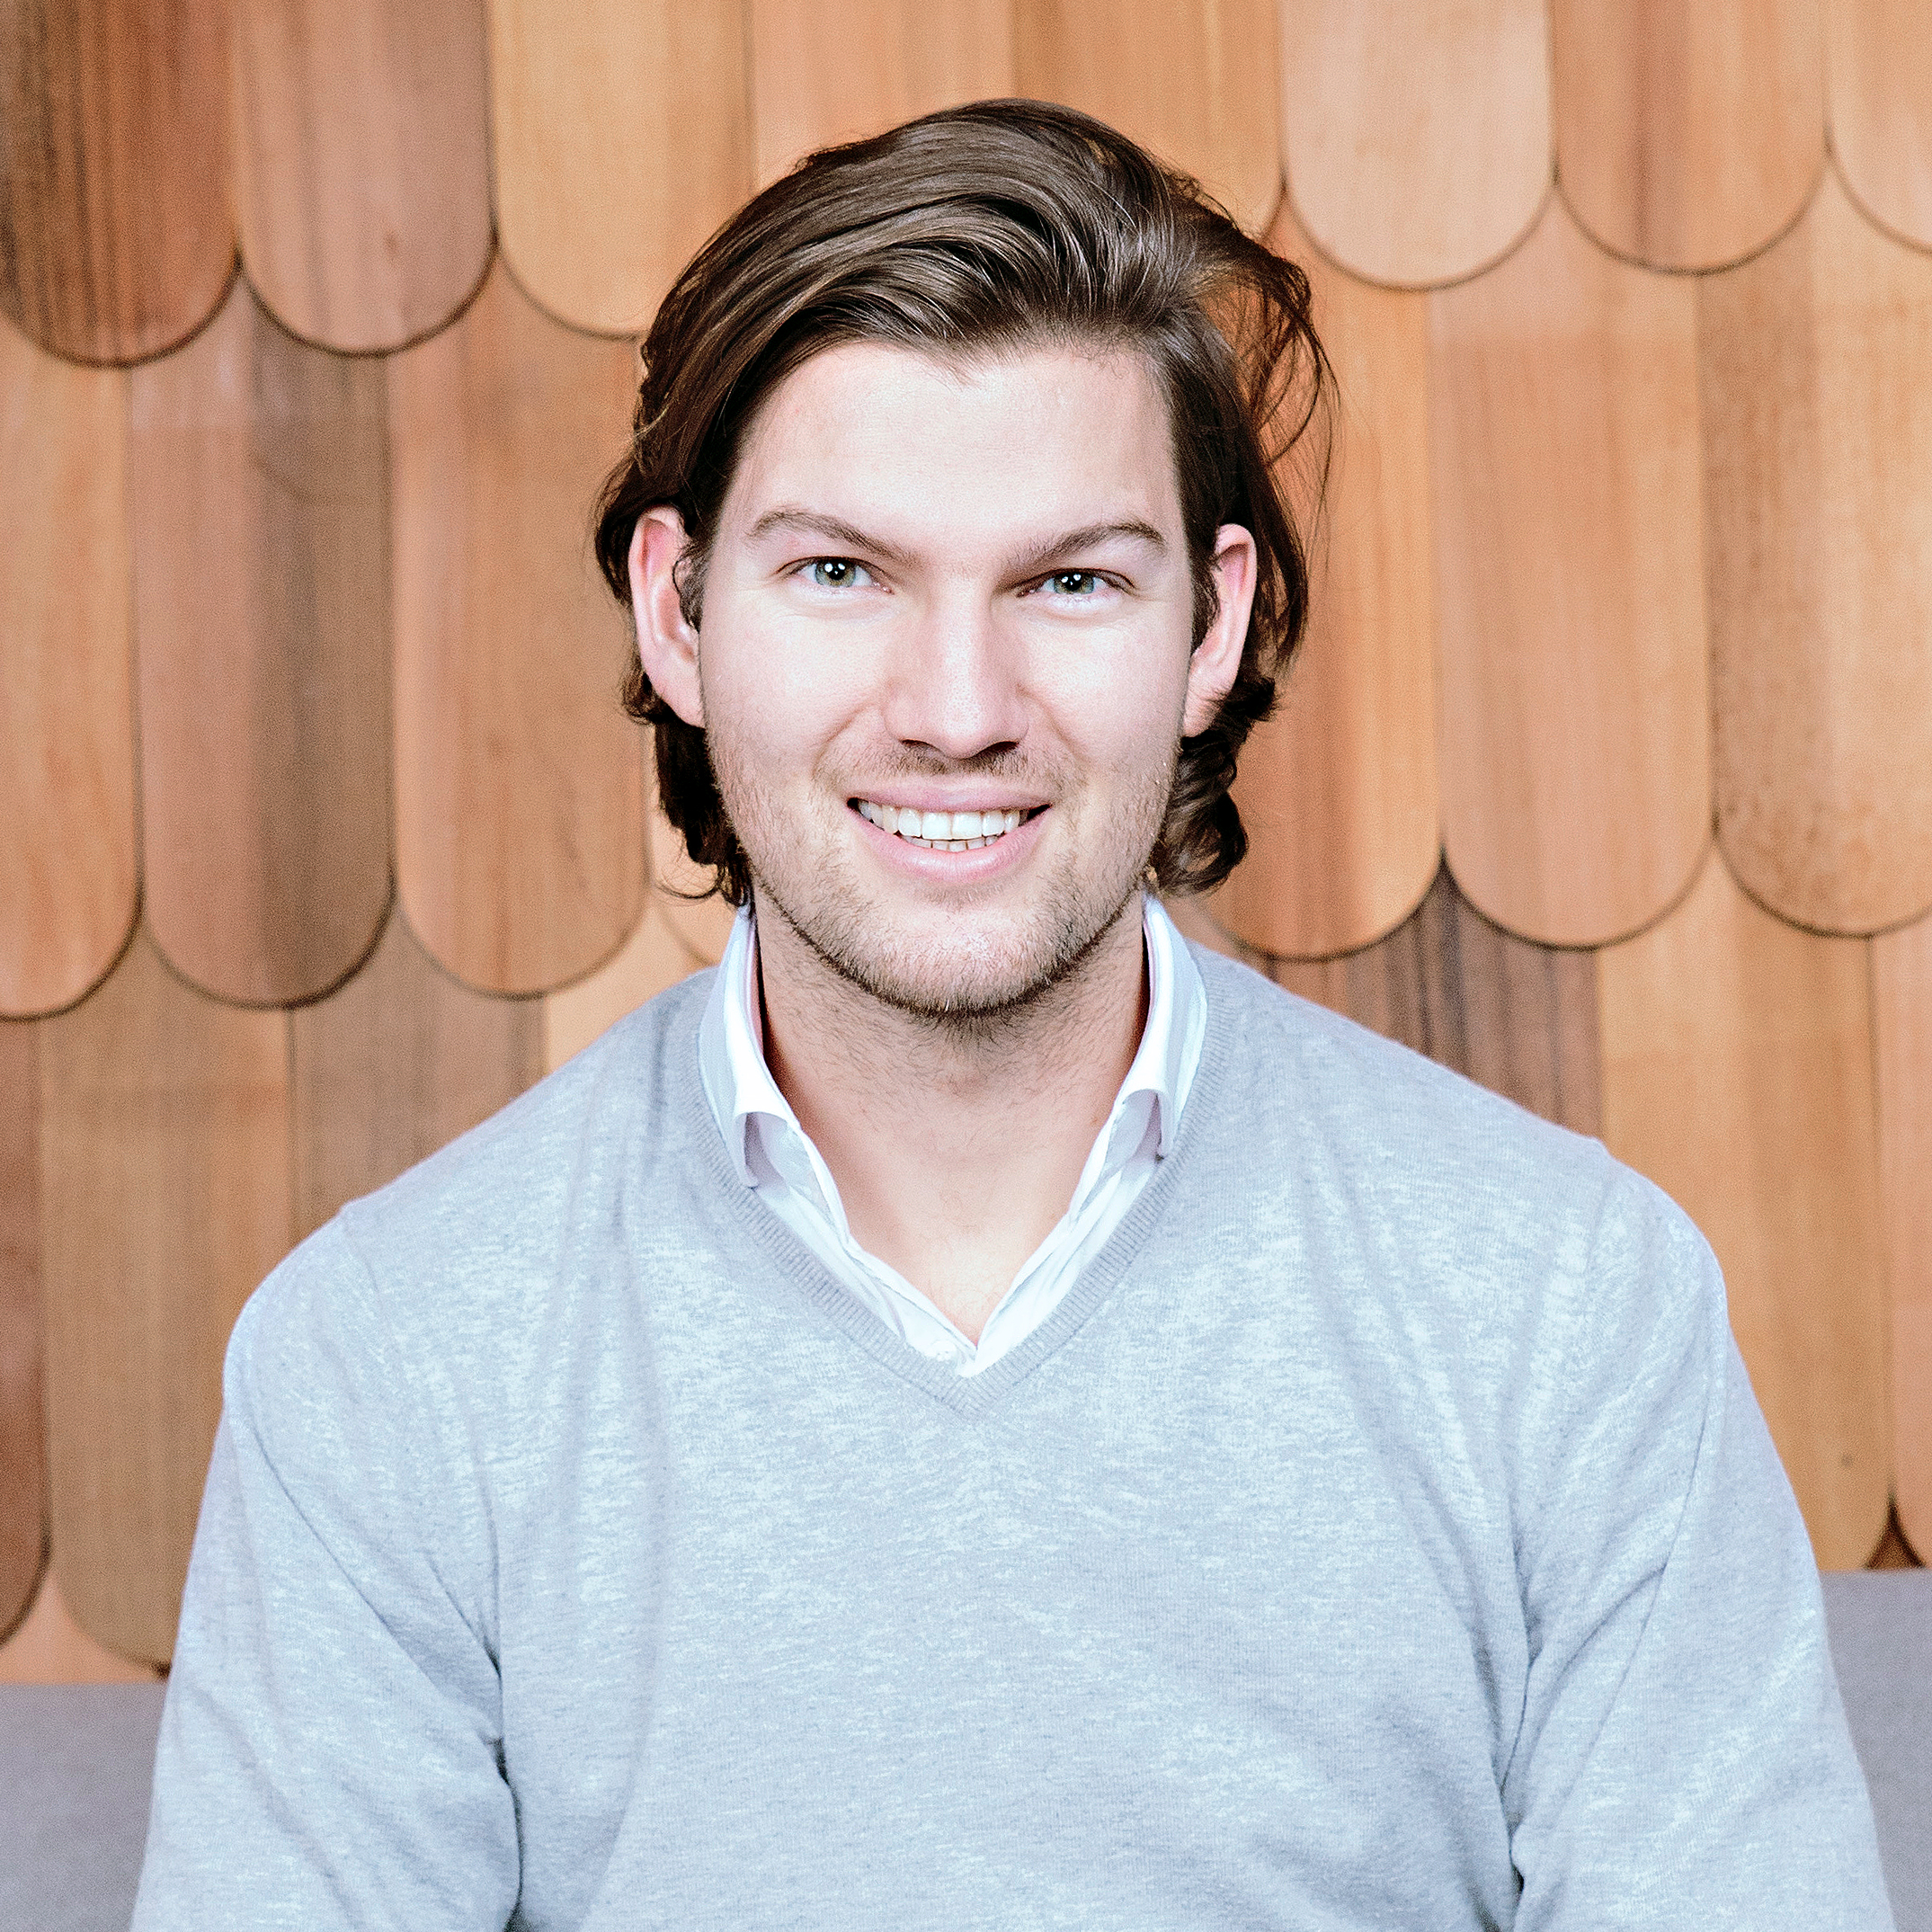 N26 Press Image of our Founder Valentin Stalf